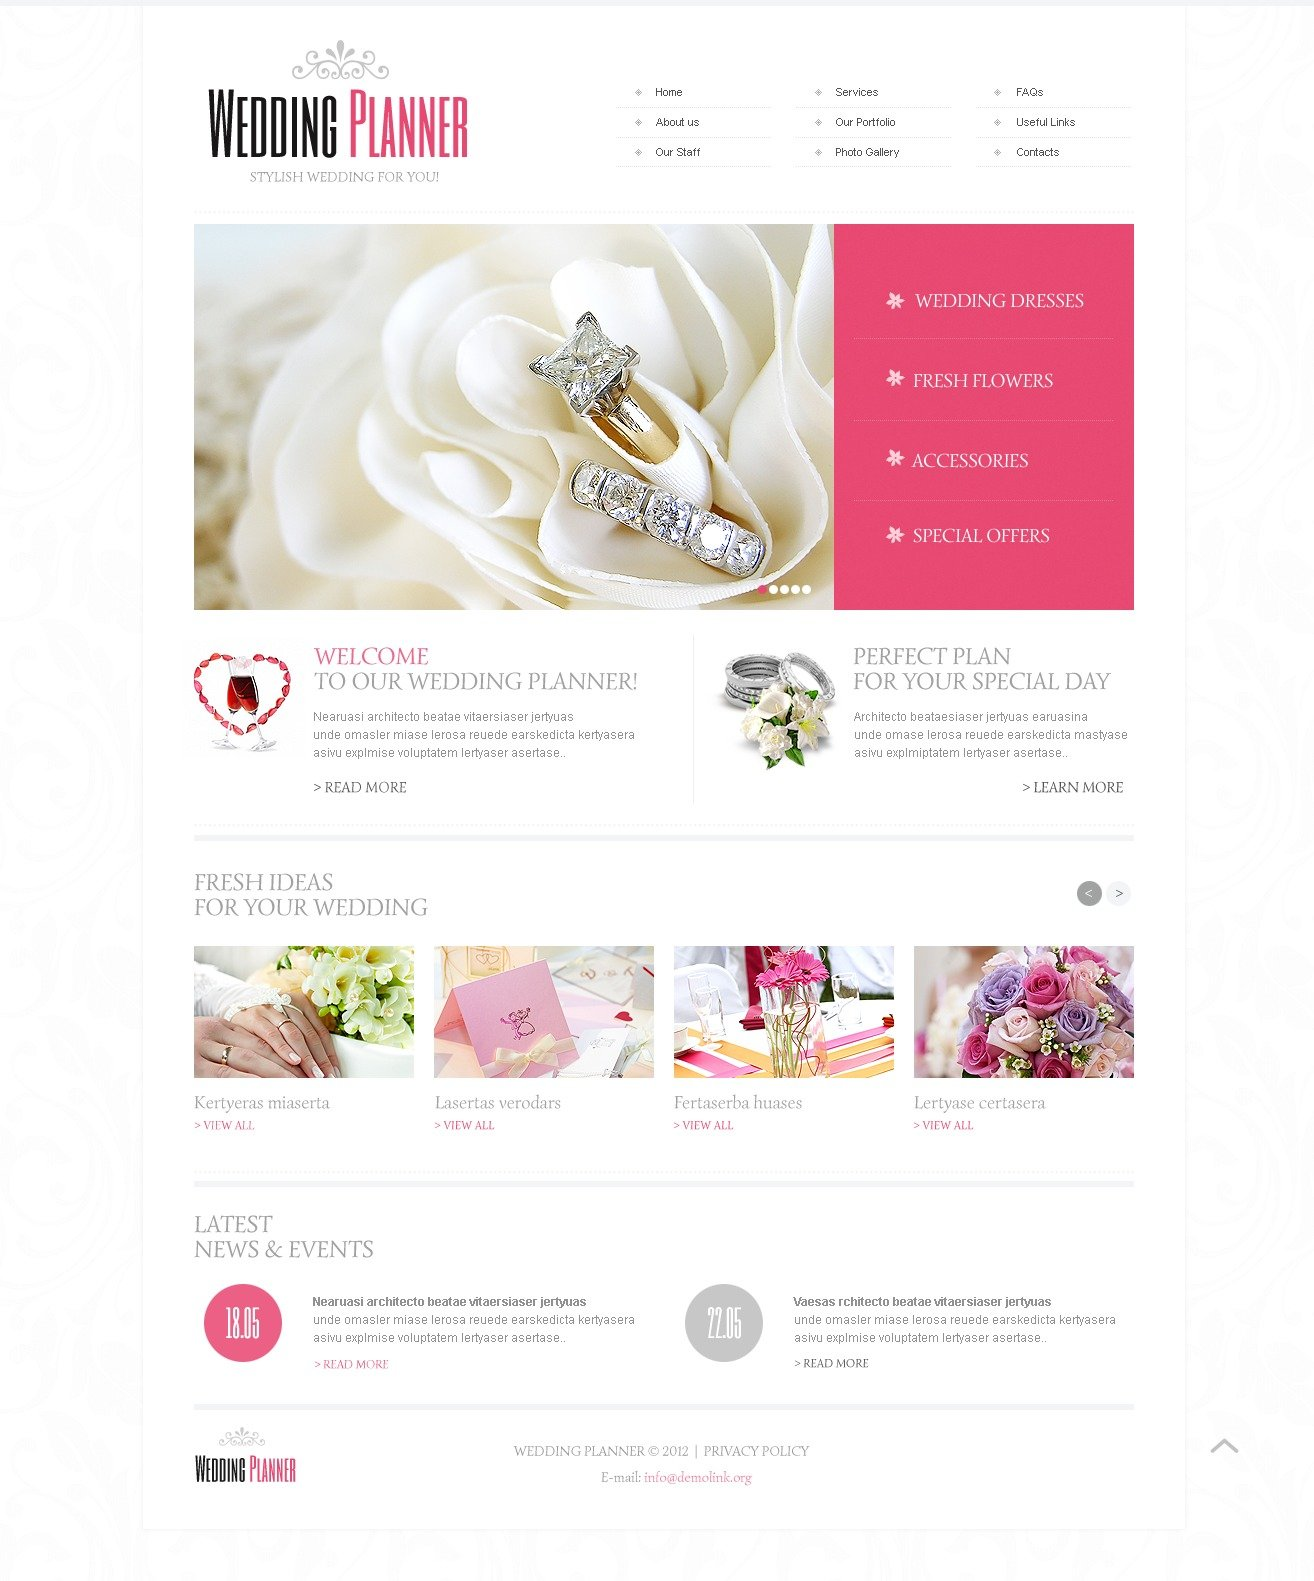 Wedding planner website template 40649 for Planner site